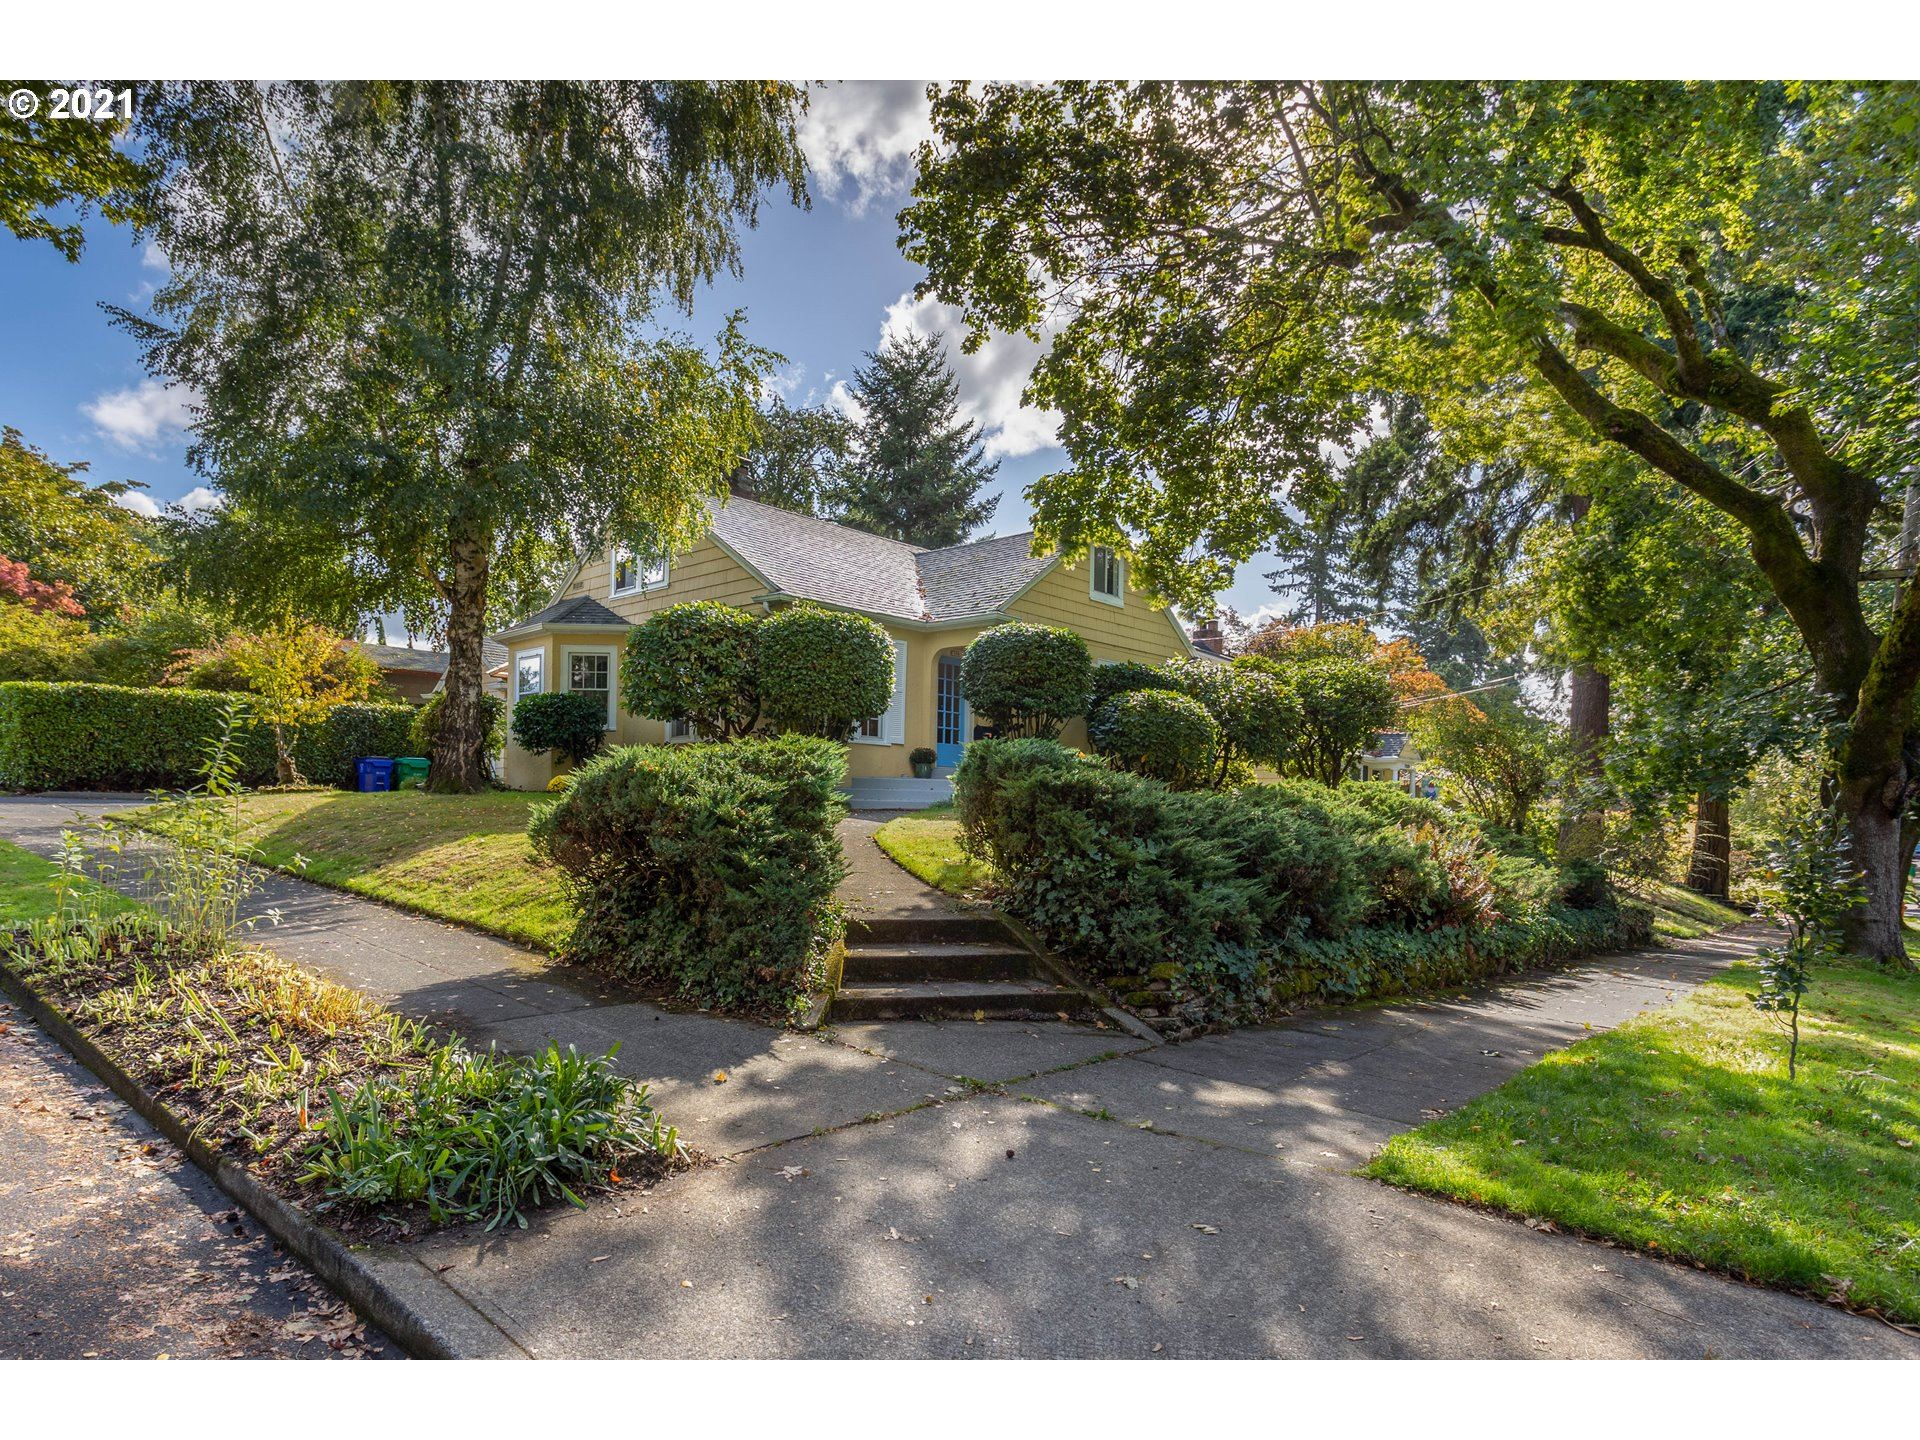 7506 SE 36TH AVE, Portland, OR 97202 - MLS#: 21285896